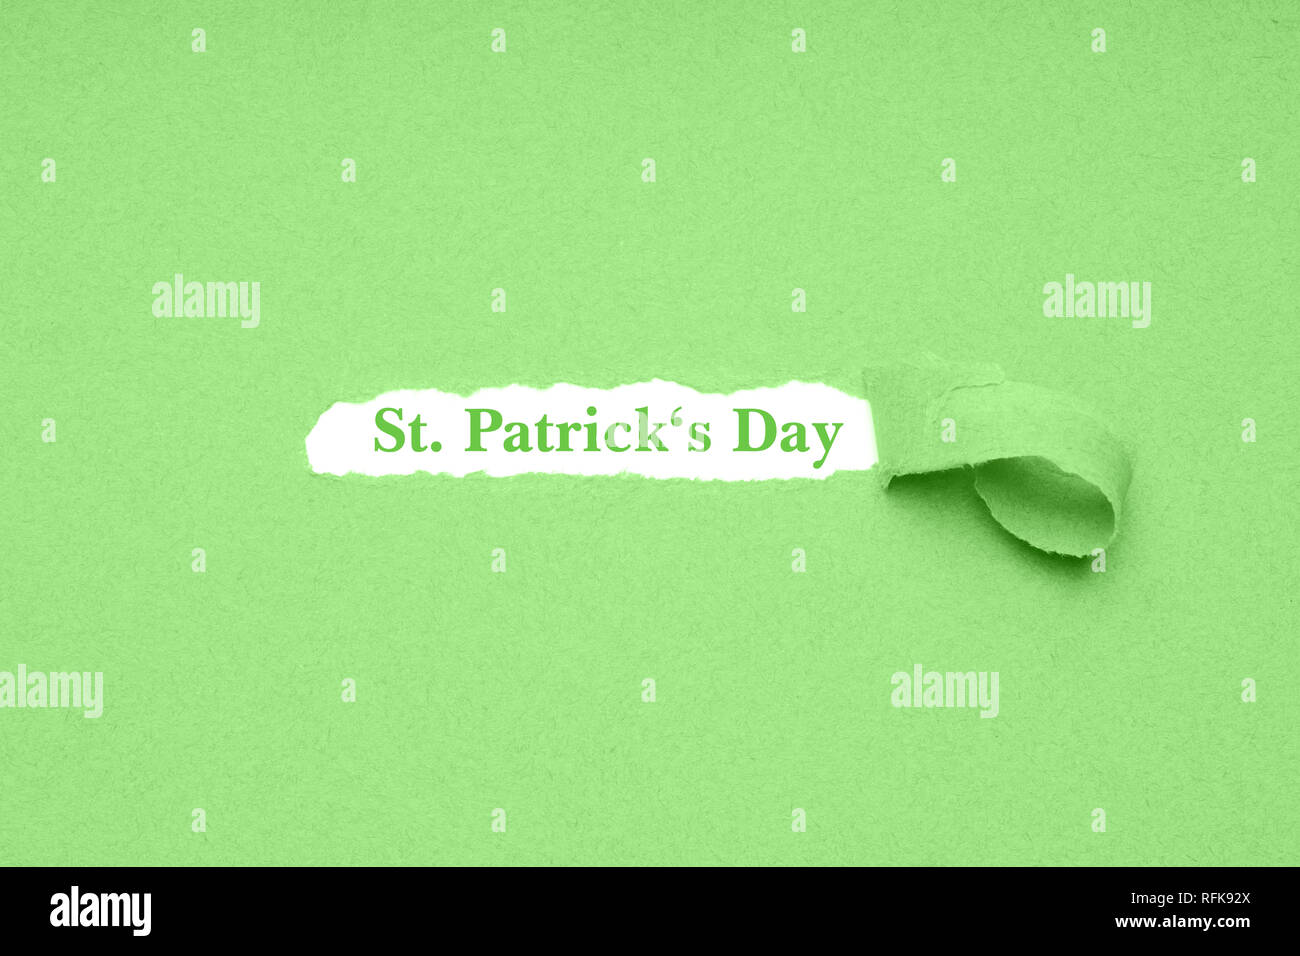 St. Patrick's Day is celebrated on March 17 - the irish national holiday is also known as Paddy's Day in Ireland - green paper background - Stock Image